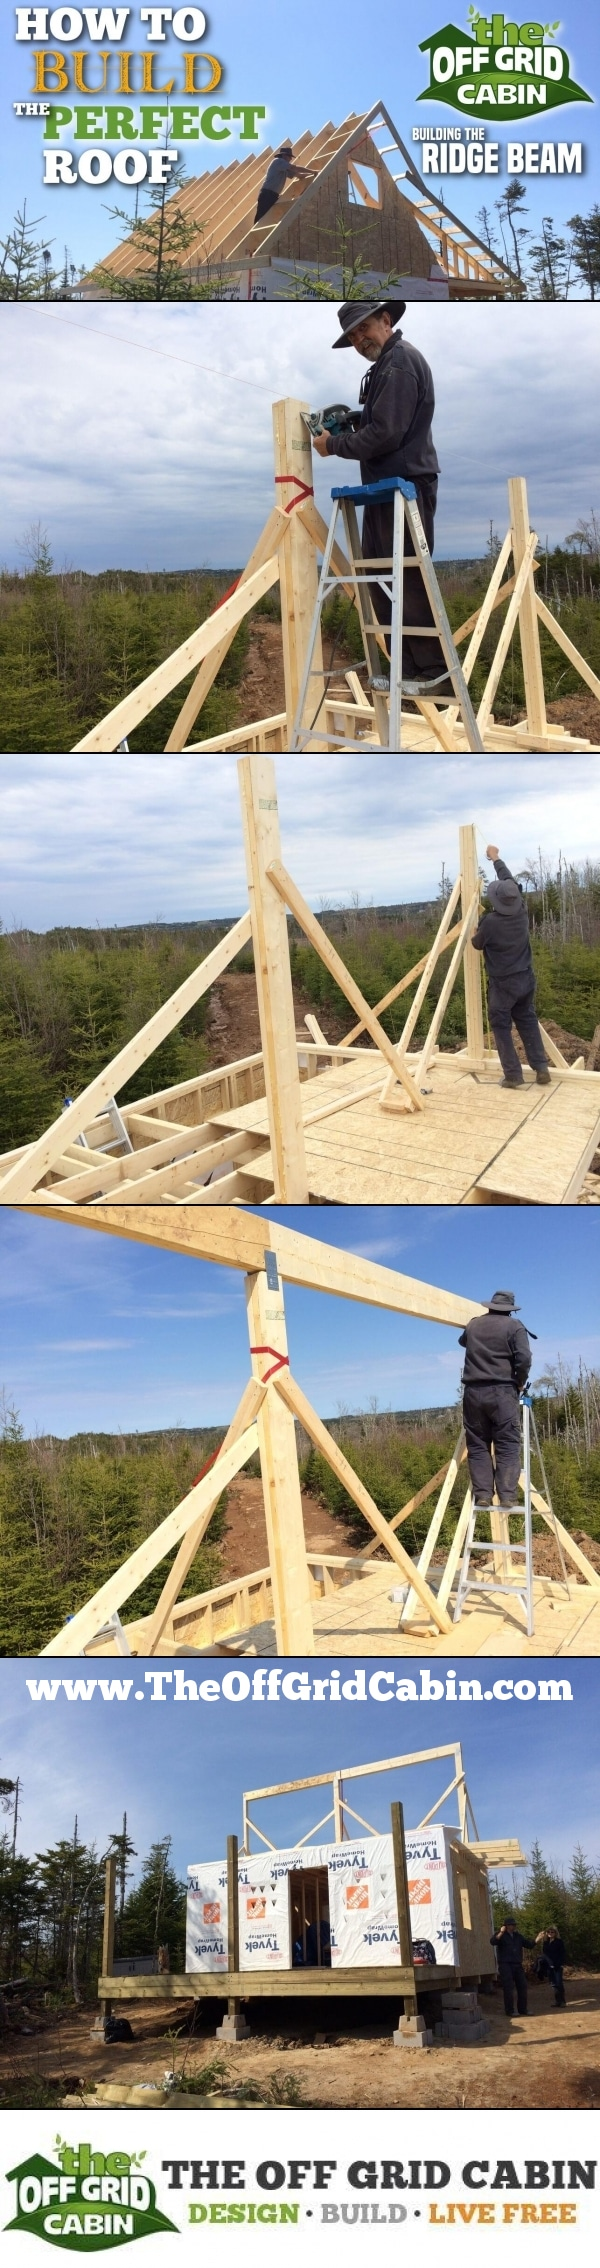 The Off Grid Cabin How To Build The Perfect Roof Ridge Beam Pinterest Image